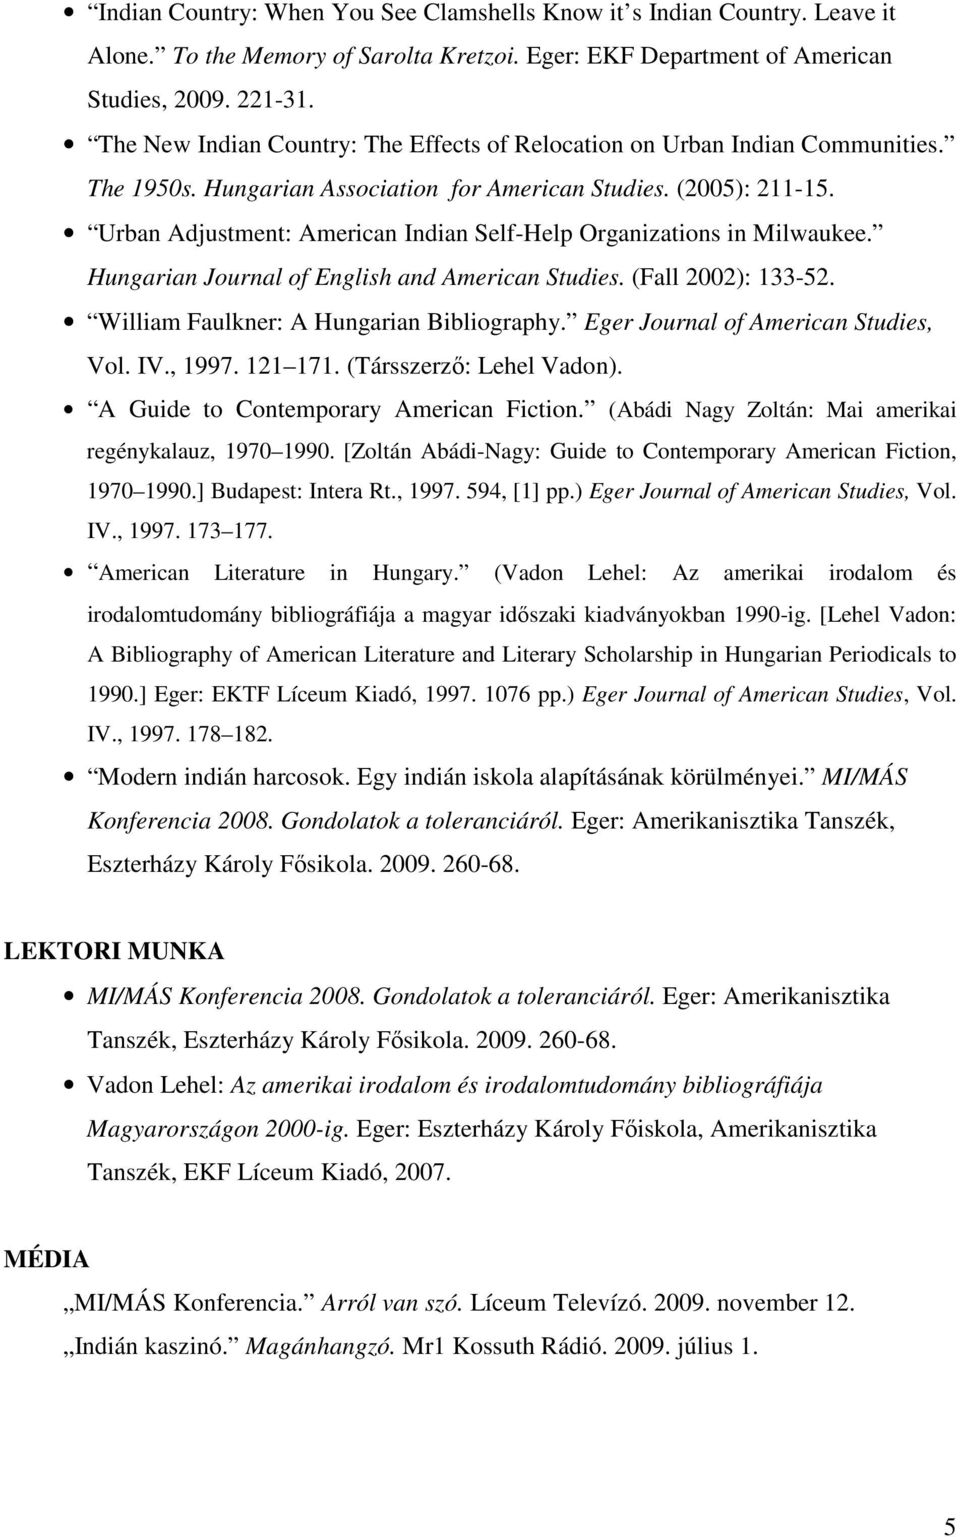 Urban Adjustment: American Indian Self-Help Organizations in Milwaukee. Hungarian Journal of English and American Studies. (Fall 2002): 133-52. William Faulkner: A Hungarian Bibliography.